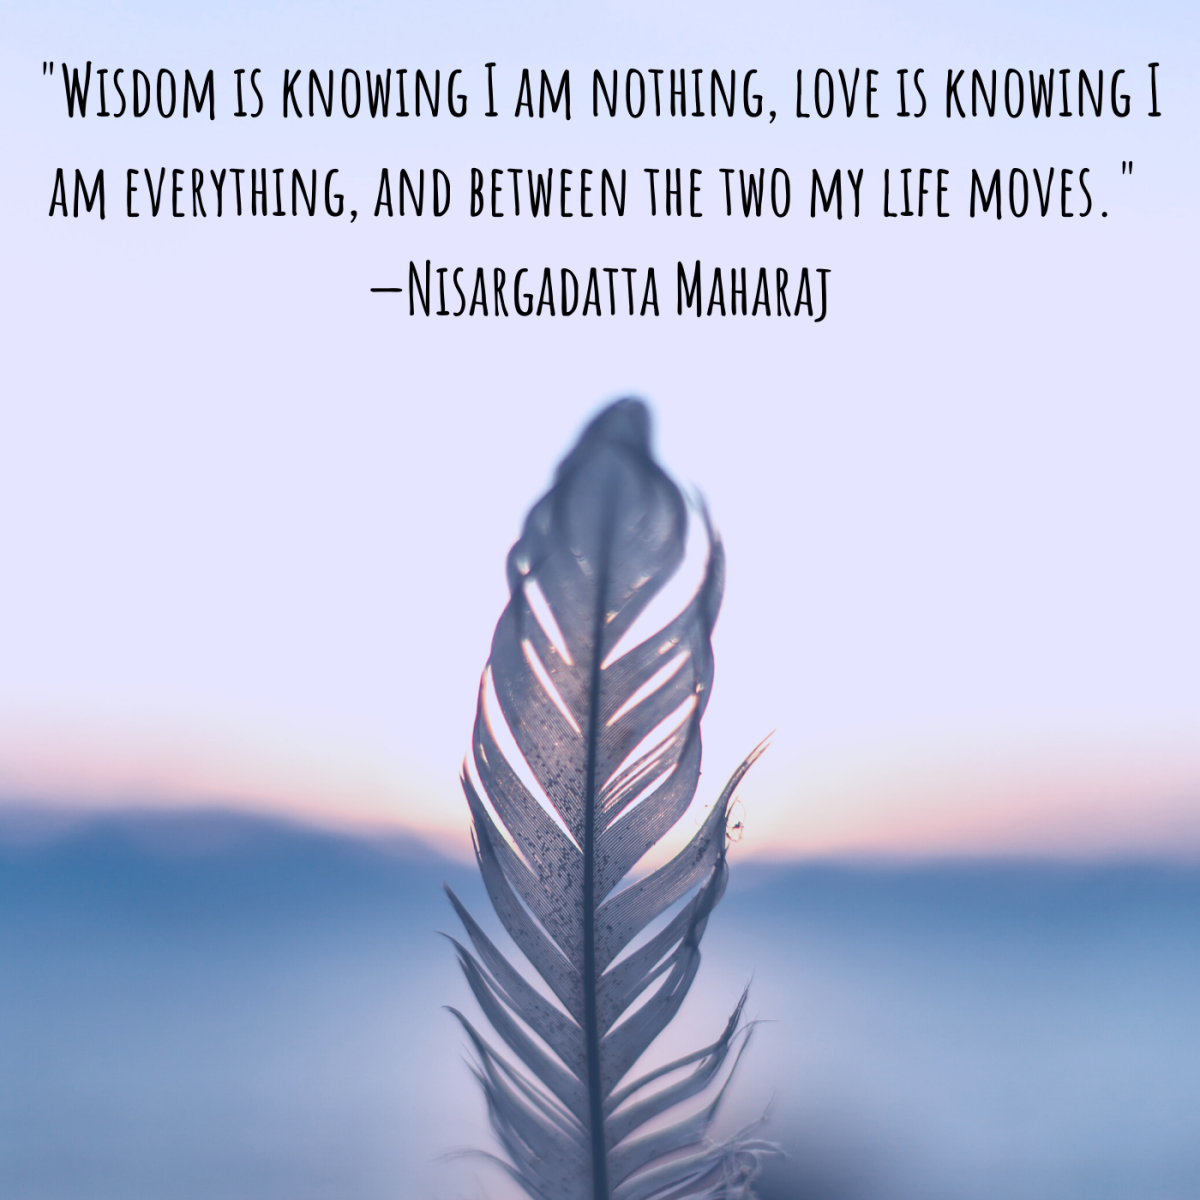 """Wisdom is knowing I am nothing, love is knowing I am everything, and between the two my life moves."" —Nisargadatta Maharaj"